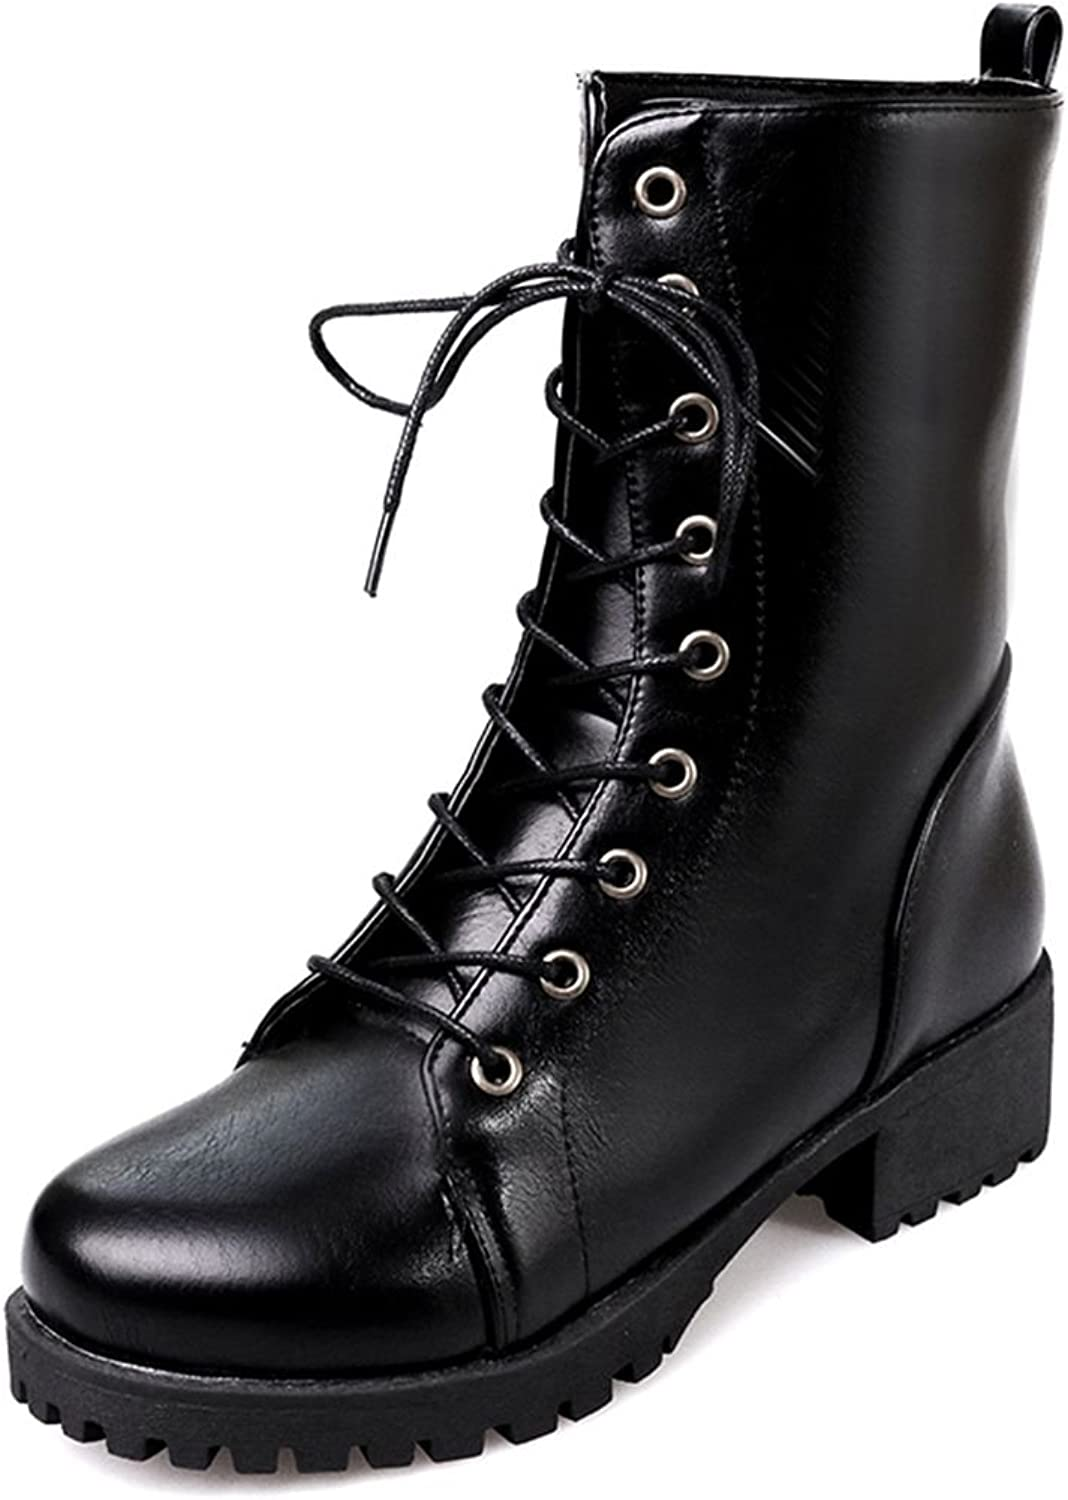 Kaloosh Sexy Women Round Toe Lace Up Combat Ankle Boots